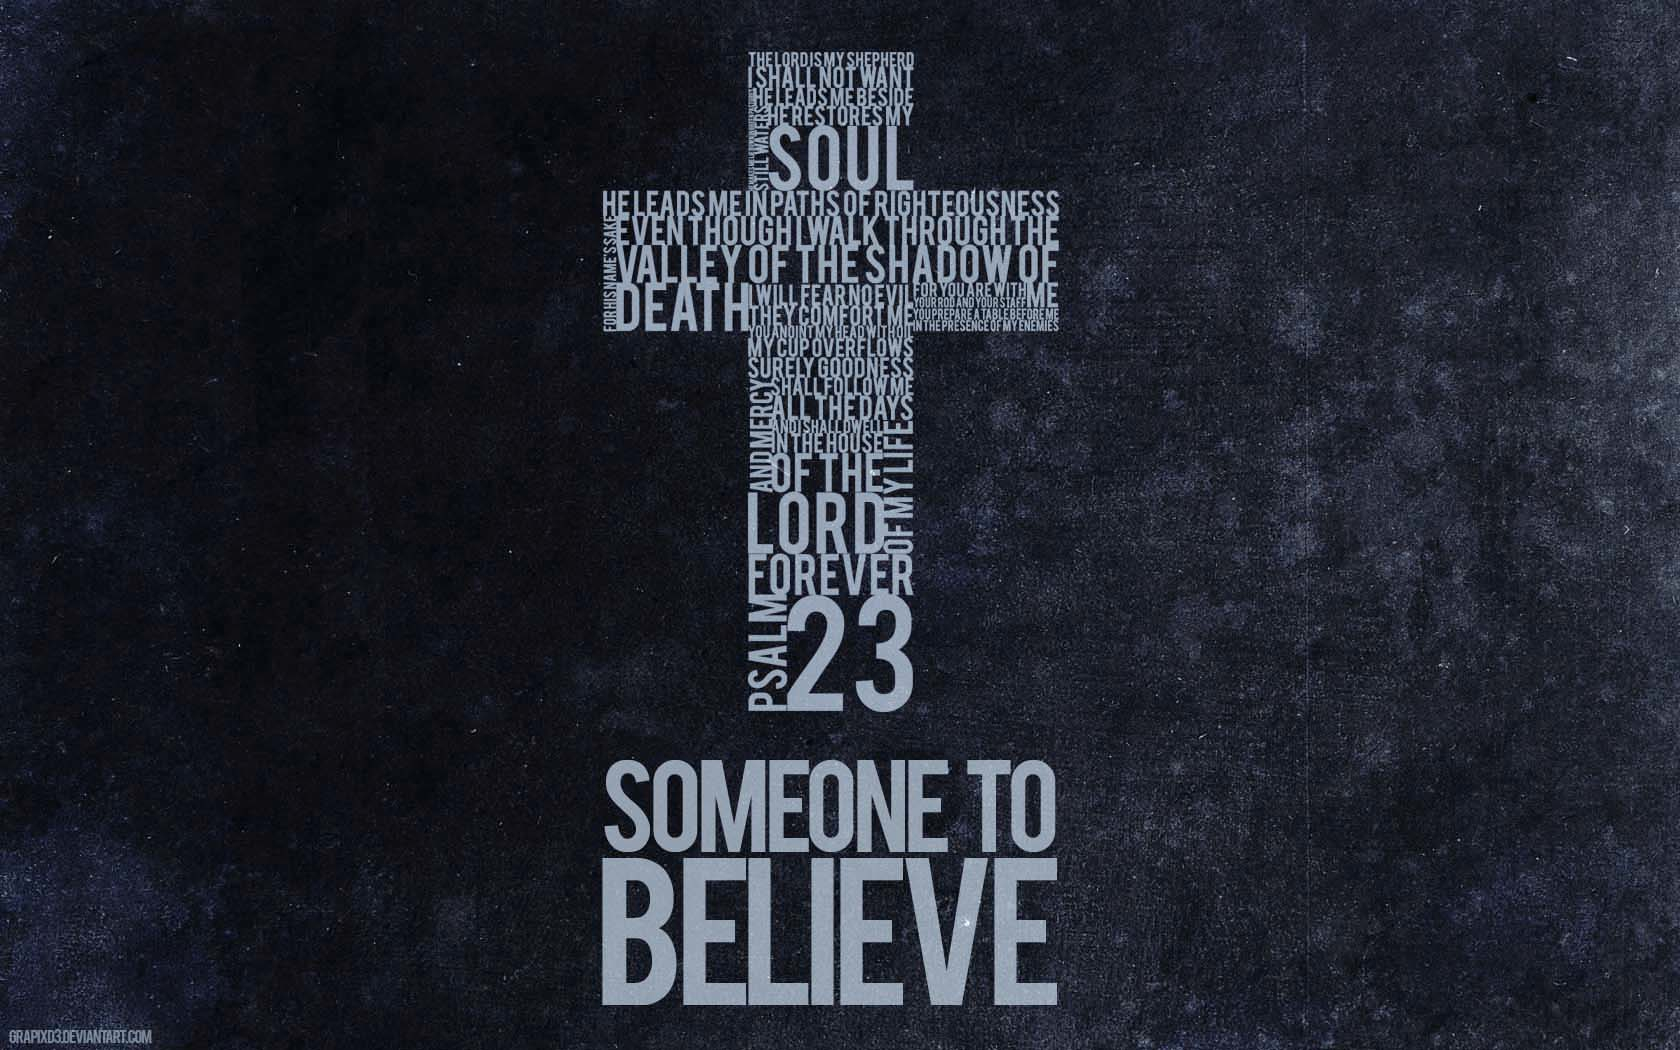 Cool Christian Wallpapers For Free Download 41 HDQ